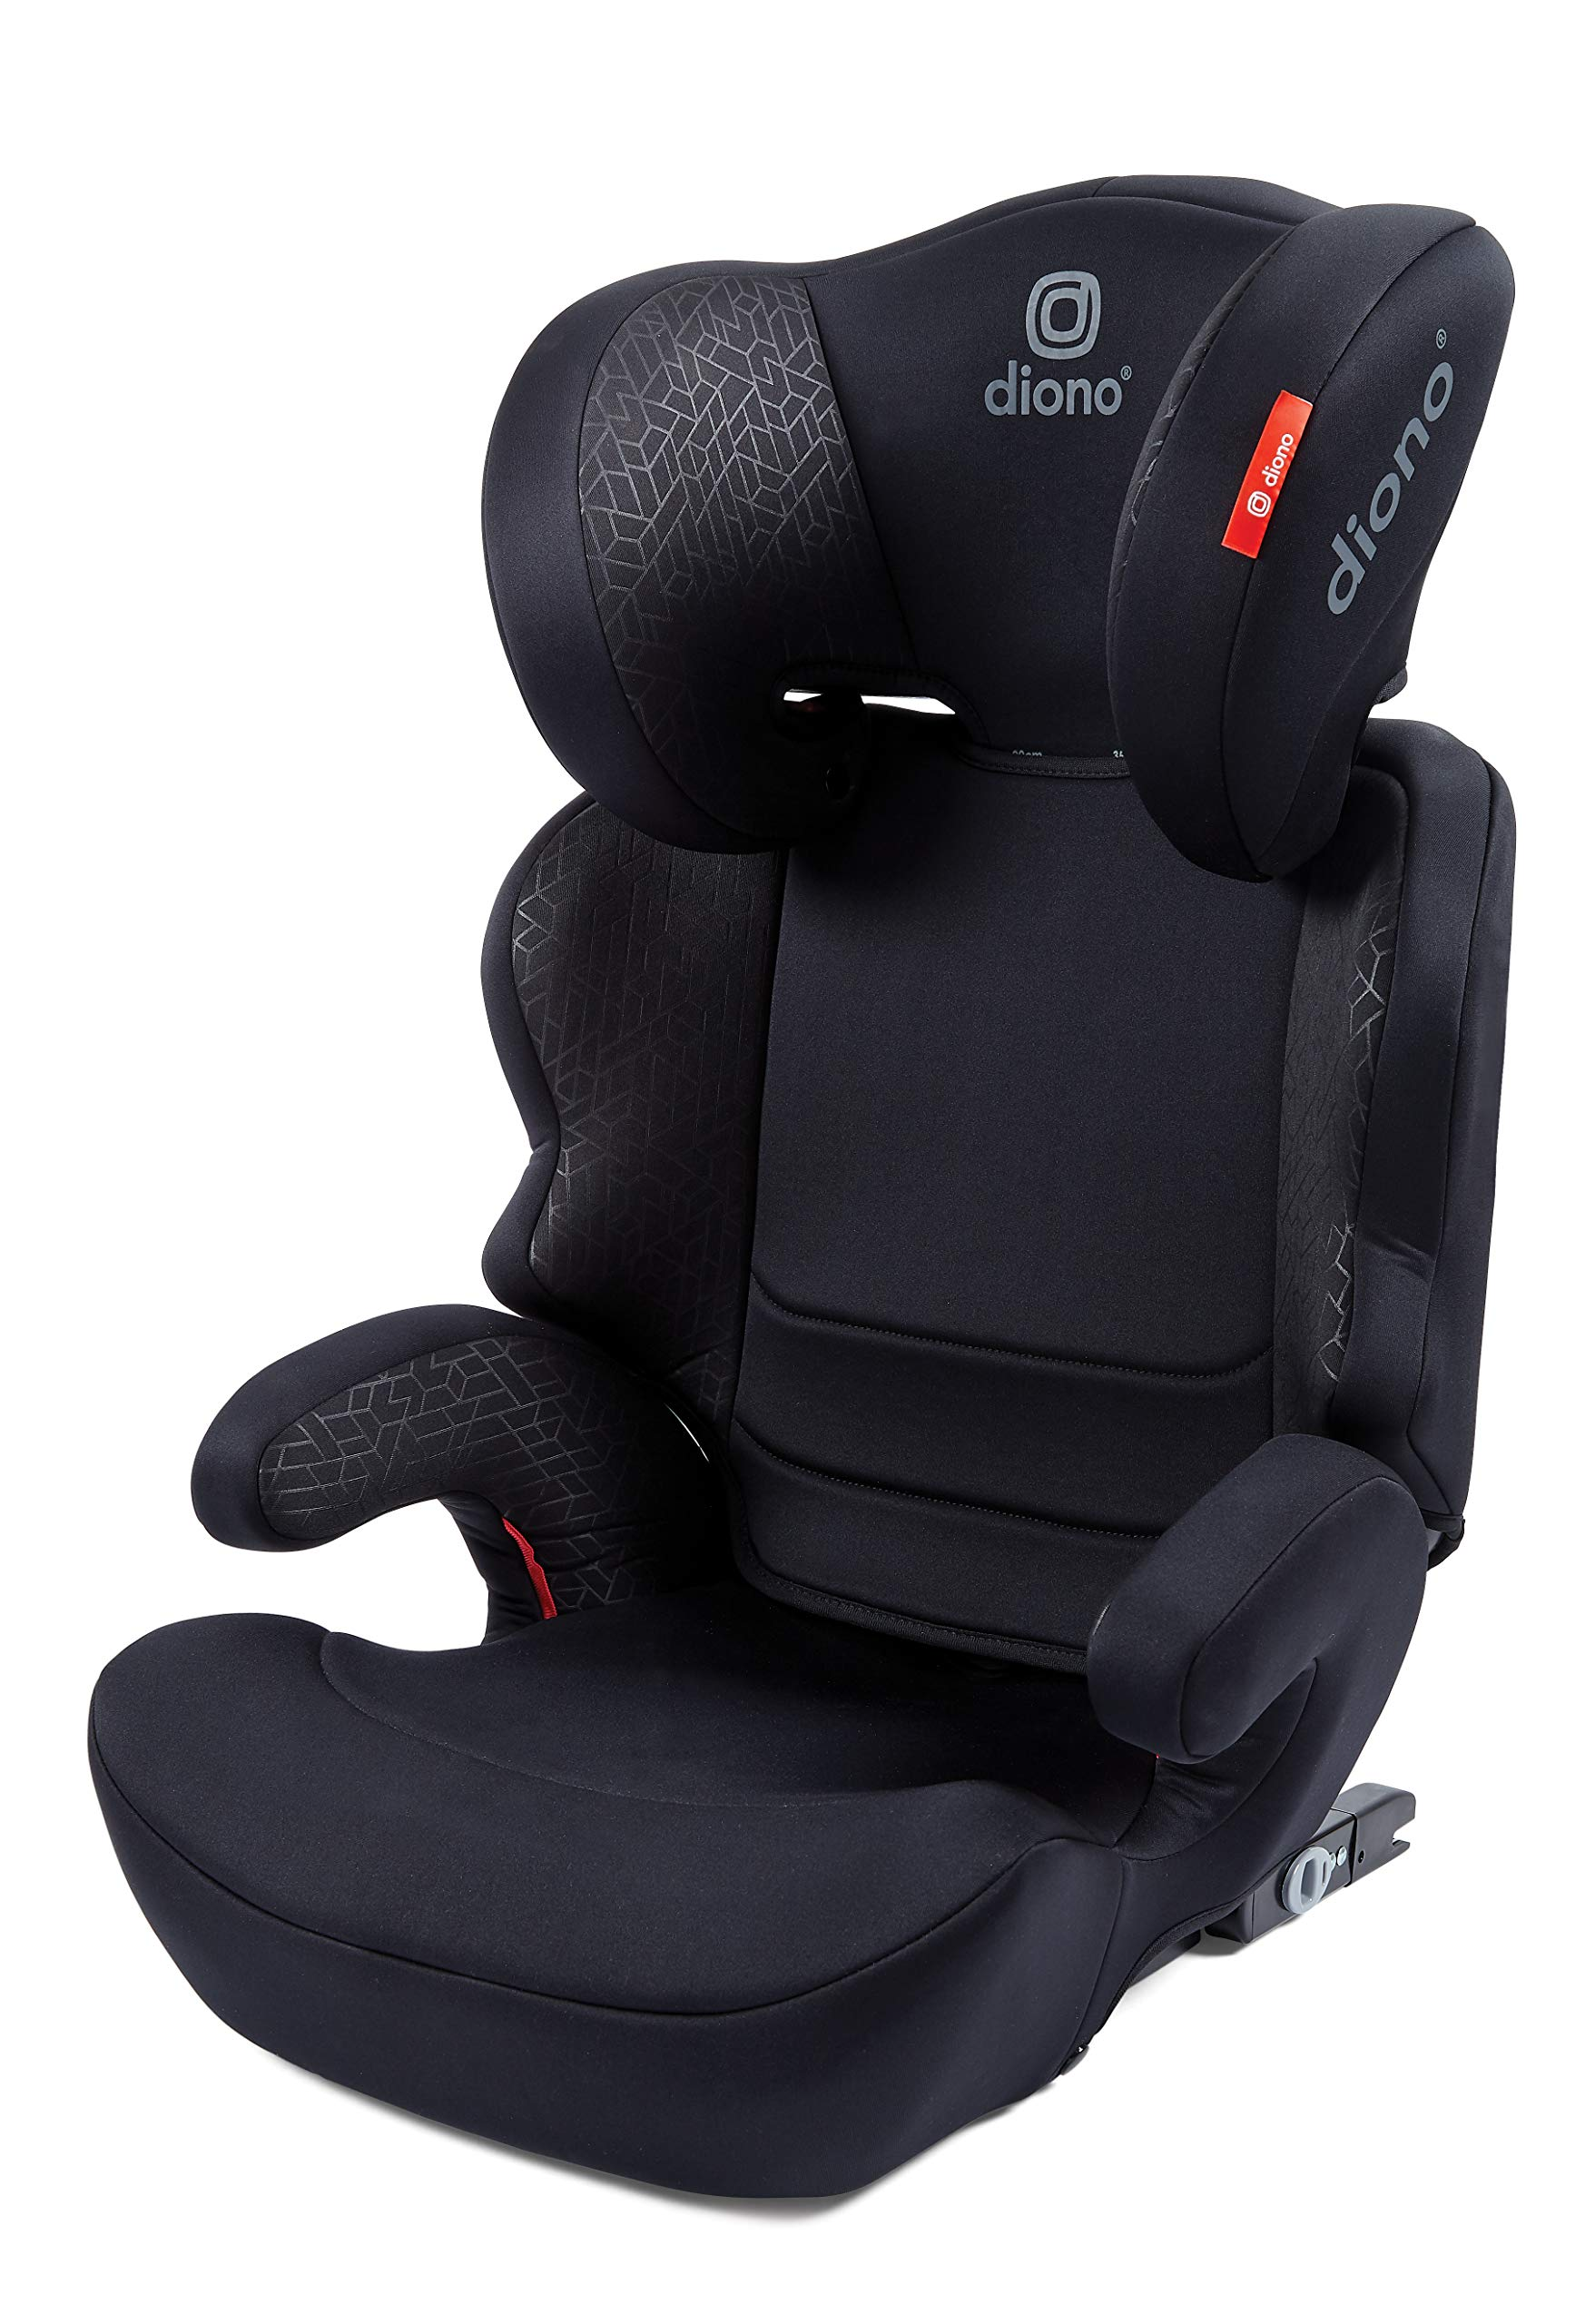 Diono Everett NXT Fix Highback Booster Seat - 7 Position Adjustable Headrest, Group 2/3 (15 - 36 kg and Up to 160 cm In Height), Approx. 4-12 Years, Black Diono Designed to grow: group 2/3 car seat is suitable from 18kg - 50kg, approx. 4 to 12 years old. The 7-position adjustable headrest can be altered using the handle on the back of the seat Superior safety: cushioned side impact protection has been engineered and tested to the highest standards. The ergonomic design includes extra padding to provide comfort and security as a child grows Universal connectivity: parents can install the seat using the vehicle seatbelt or use the integrated rigid latch connectors that anchor the seat to the car allowing the child to buckle themselves in 1